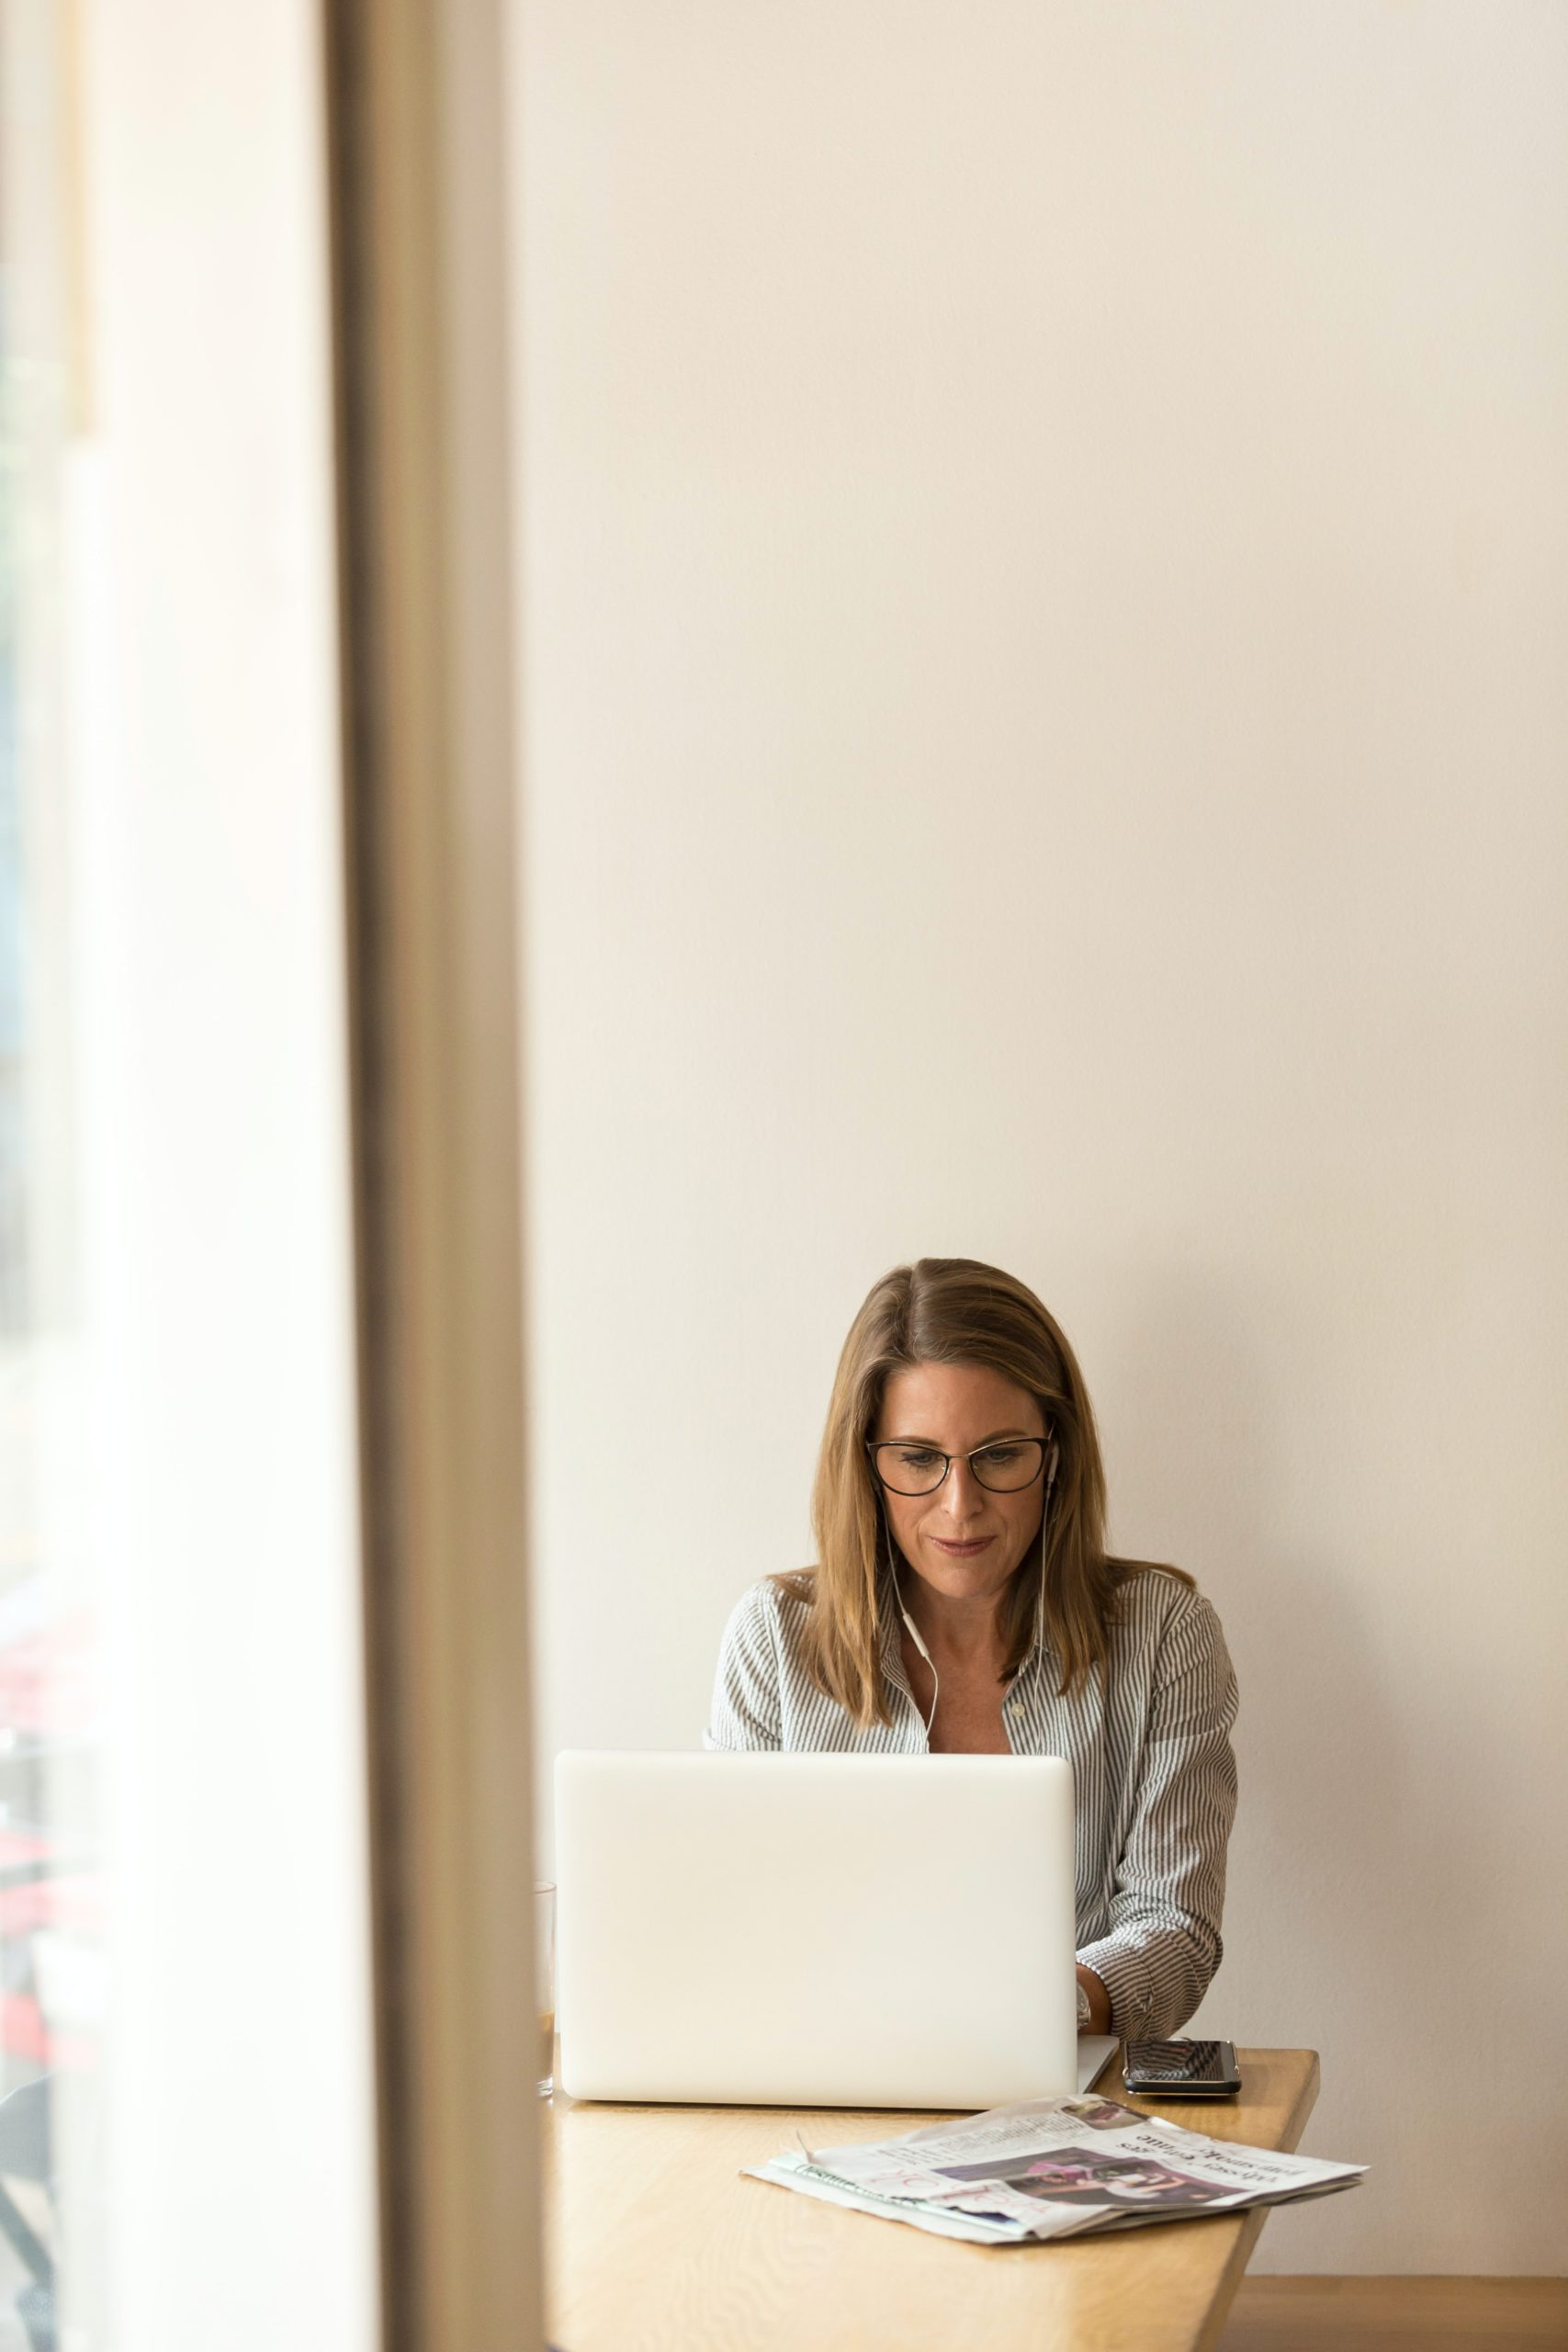 Networking Remotely to Find New Clients for Your Firm